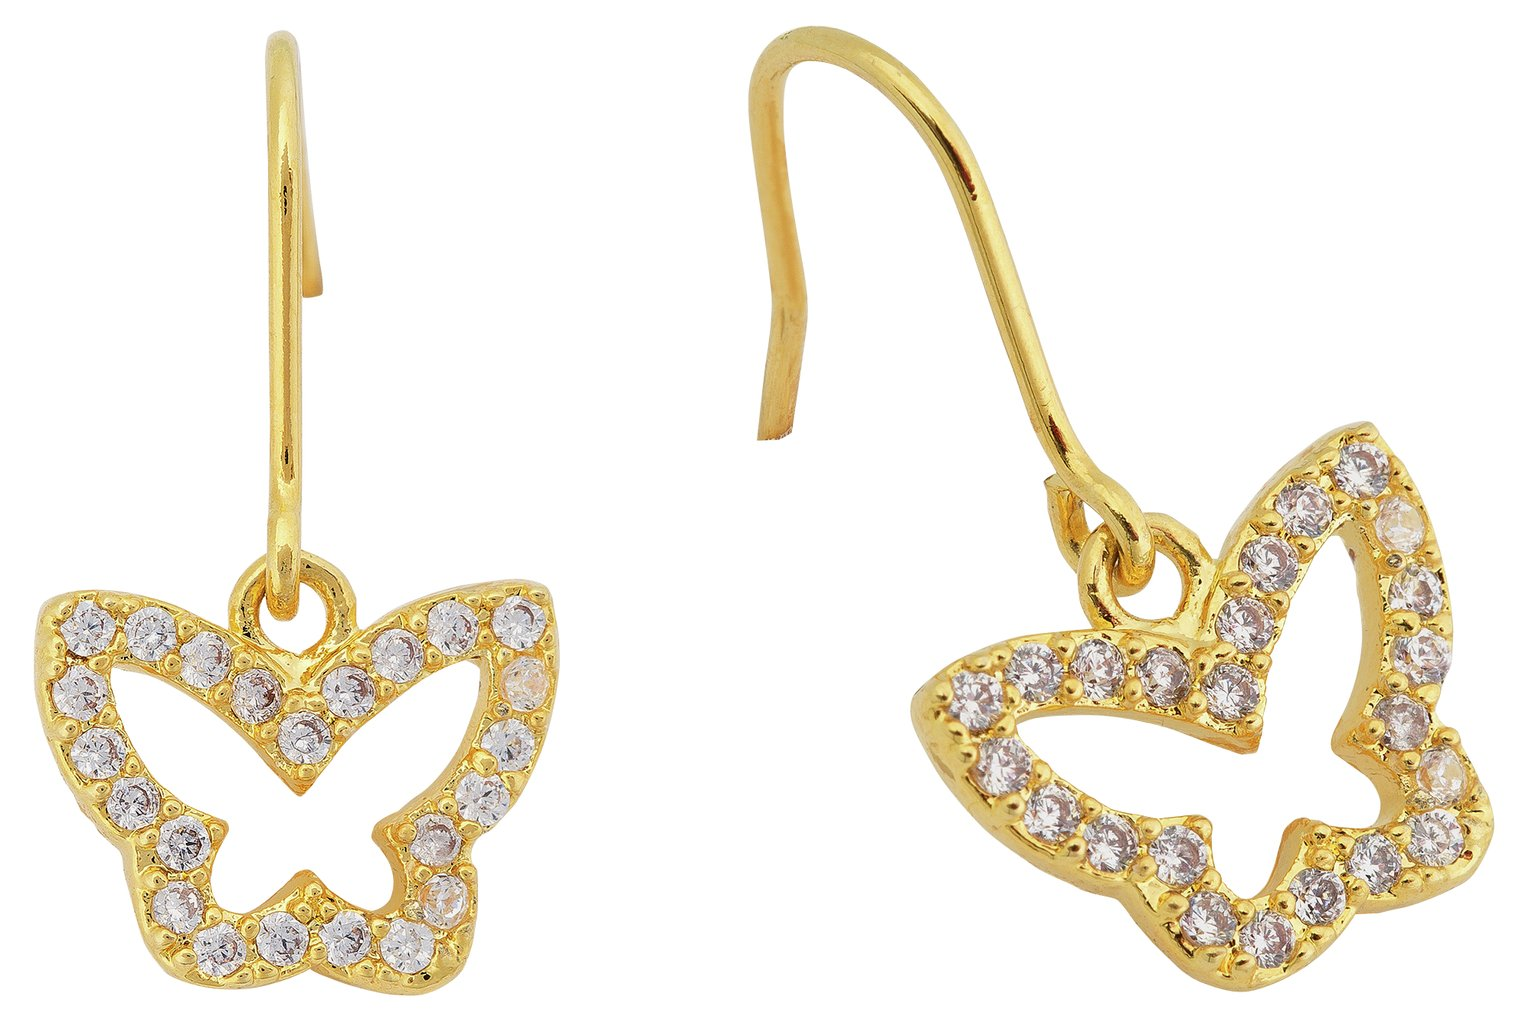 Image of Abbey Clancy Gold Colour Cubic Zirconia Butterfly Earrings